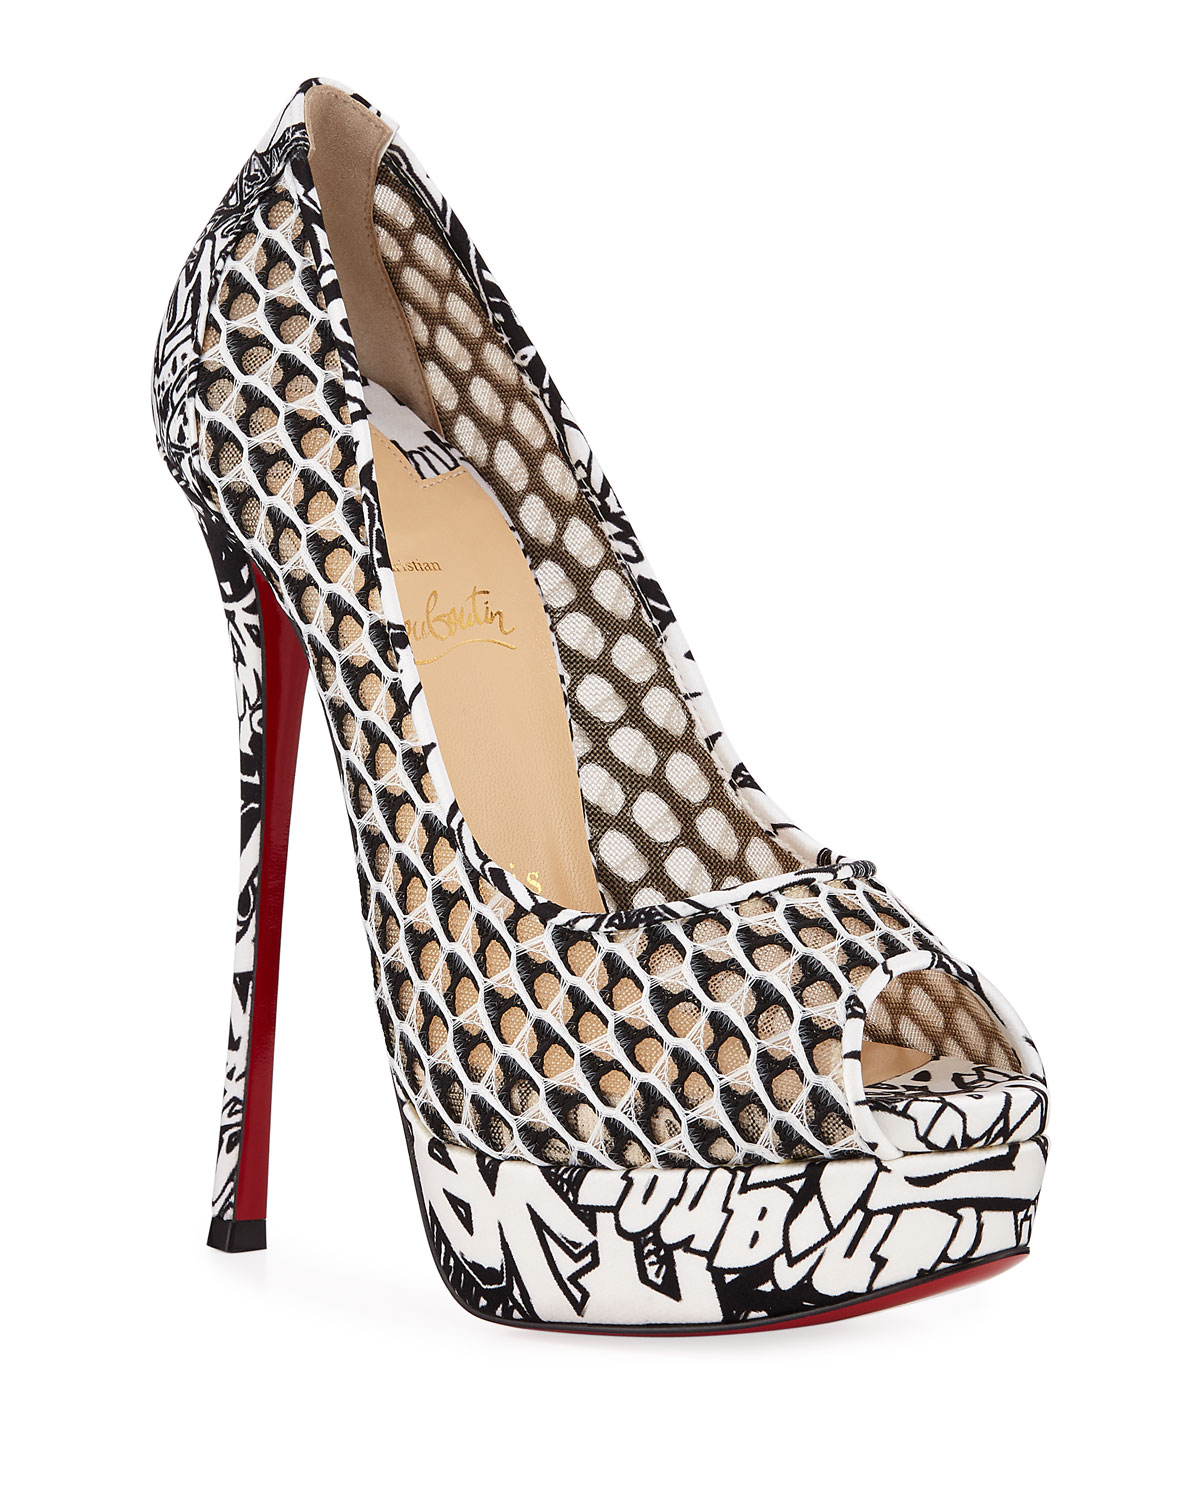 673581b35f1 Christian LouboutinFetish Fishnet Lace Extra High-Heel Red Sole Pumps